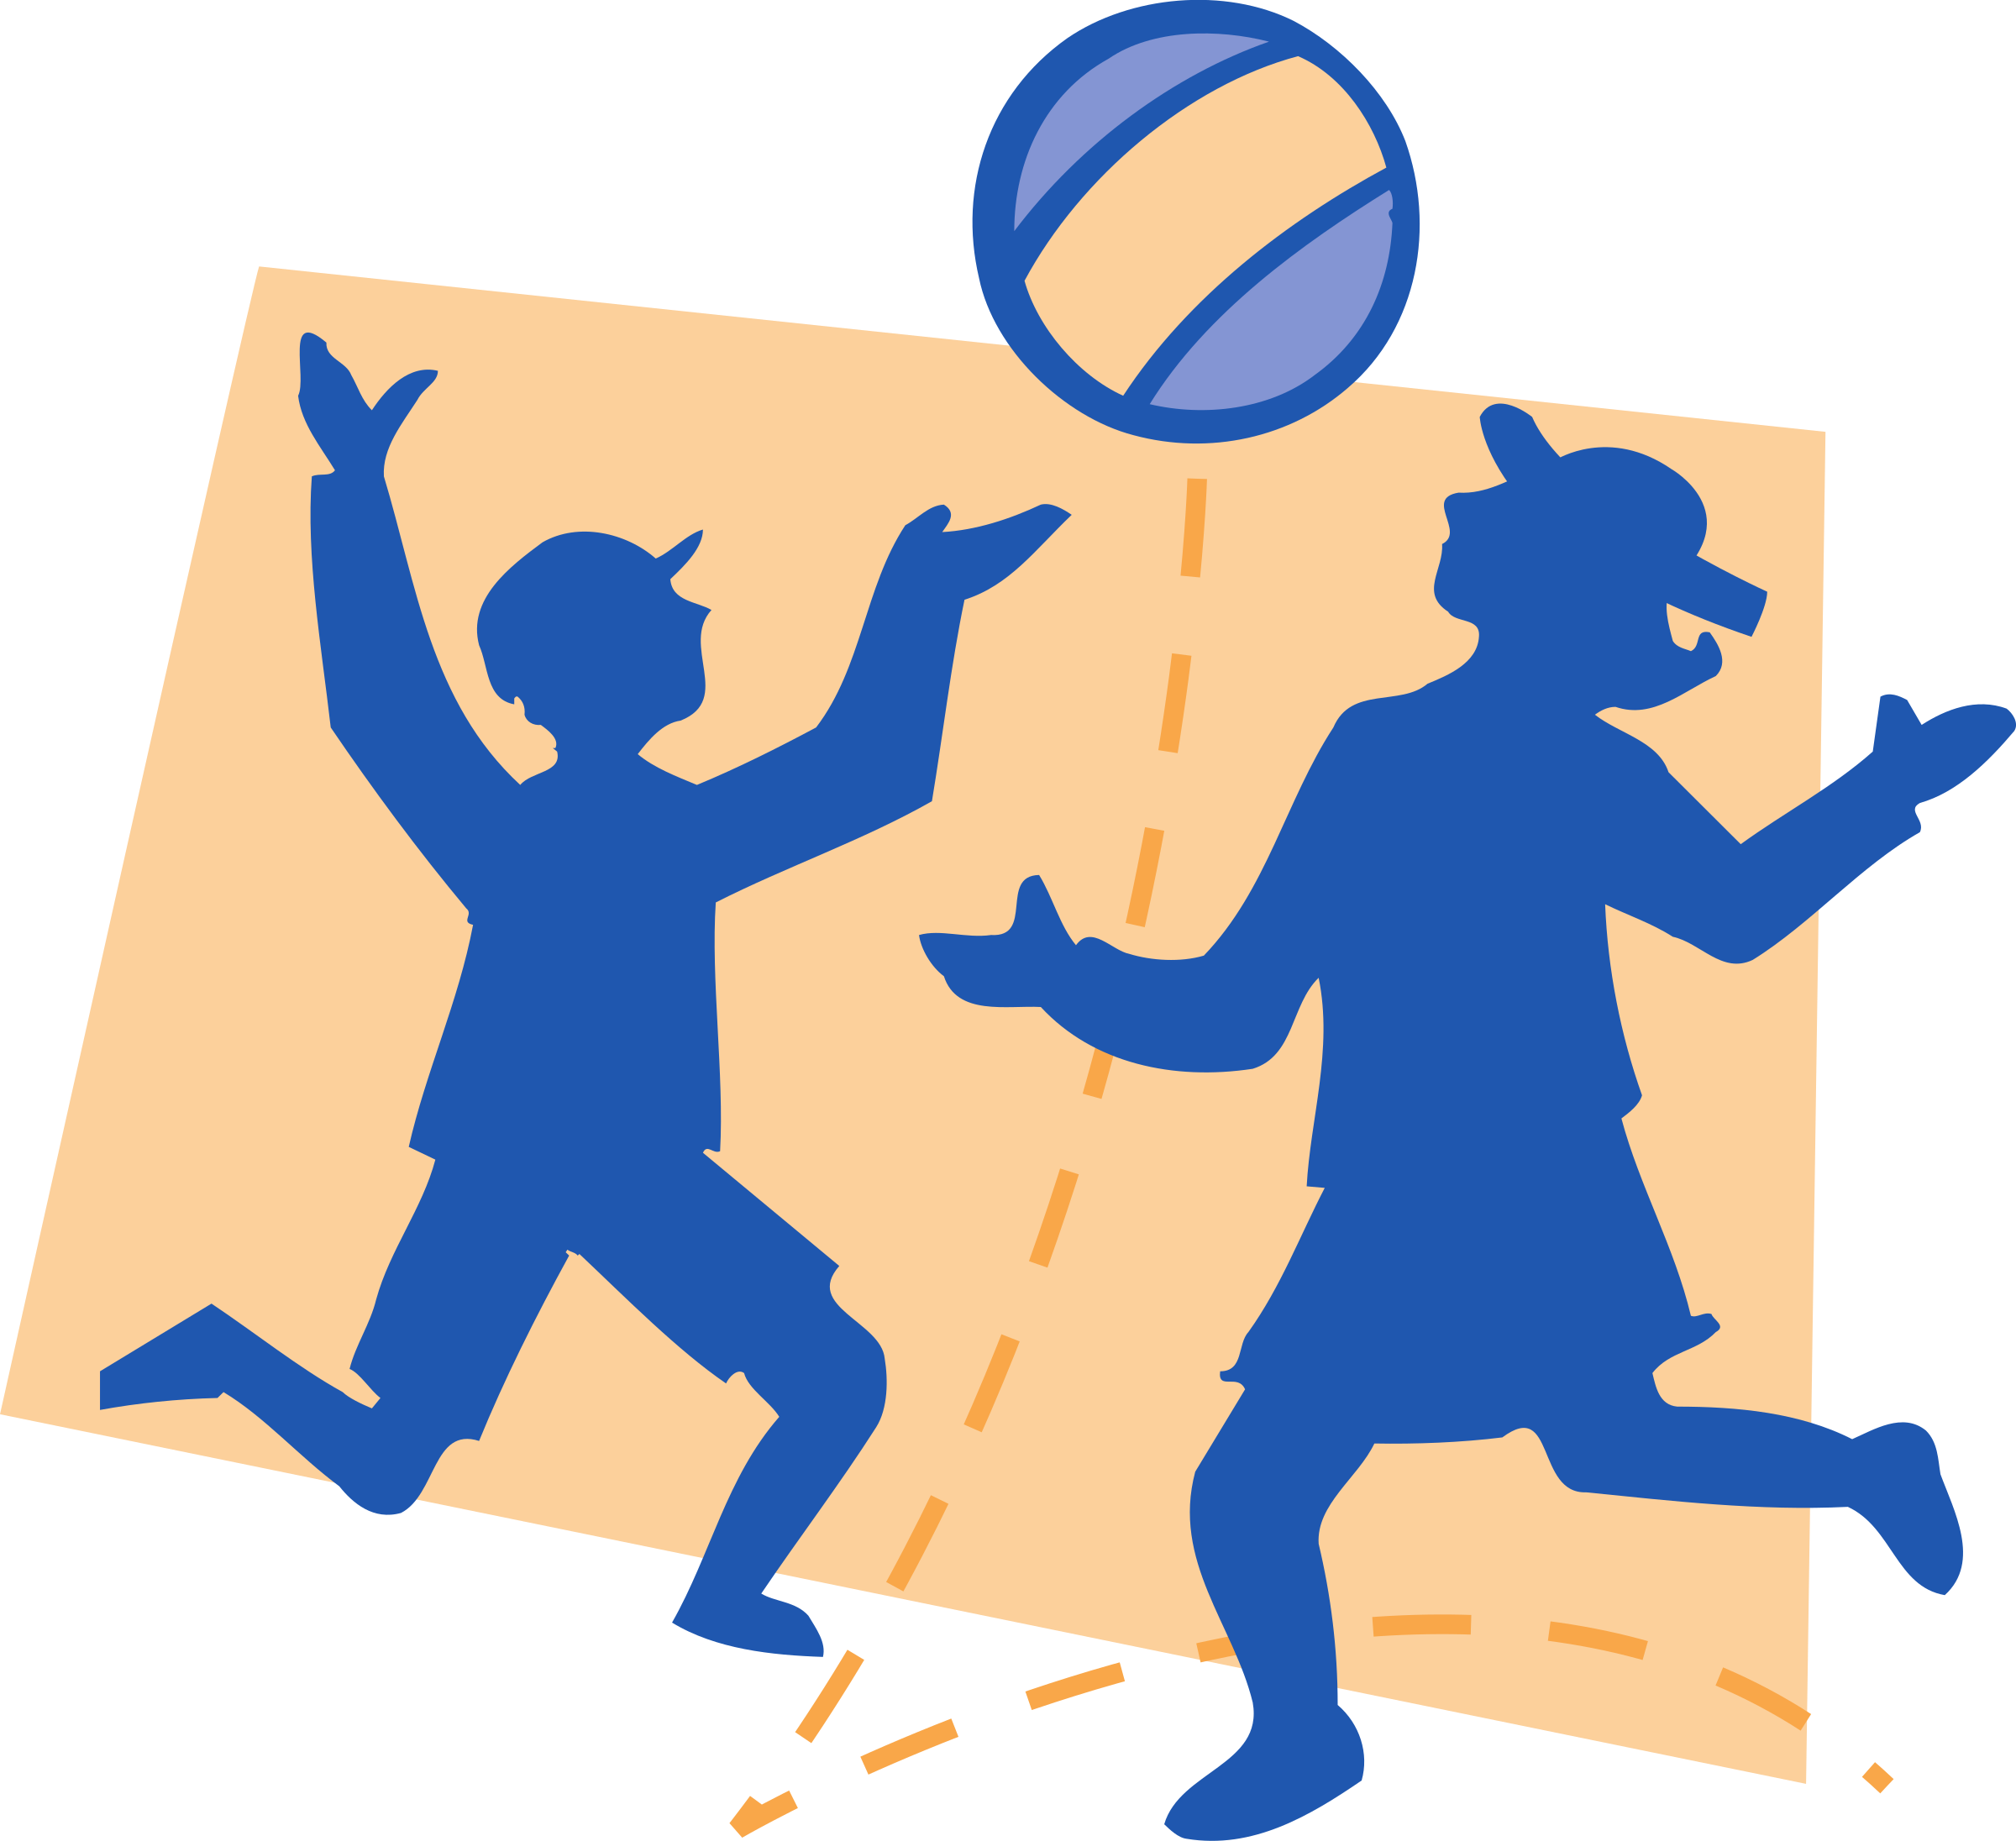 Clipart grass volleyball. Children playing big image